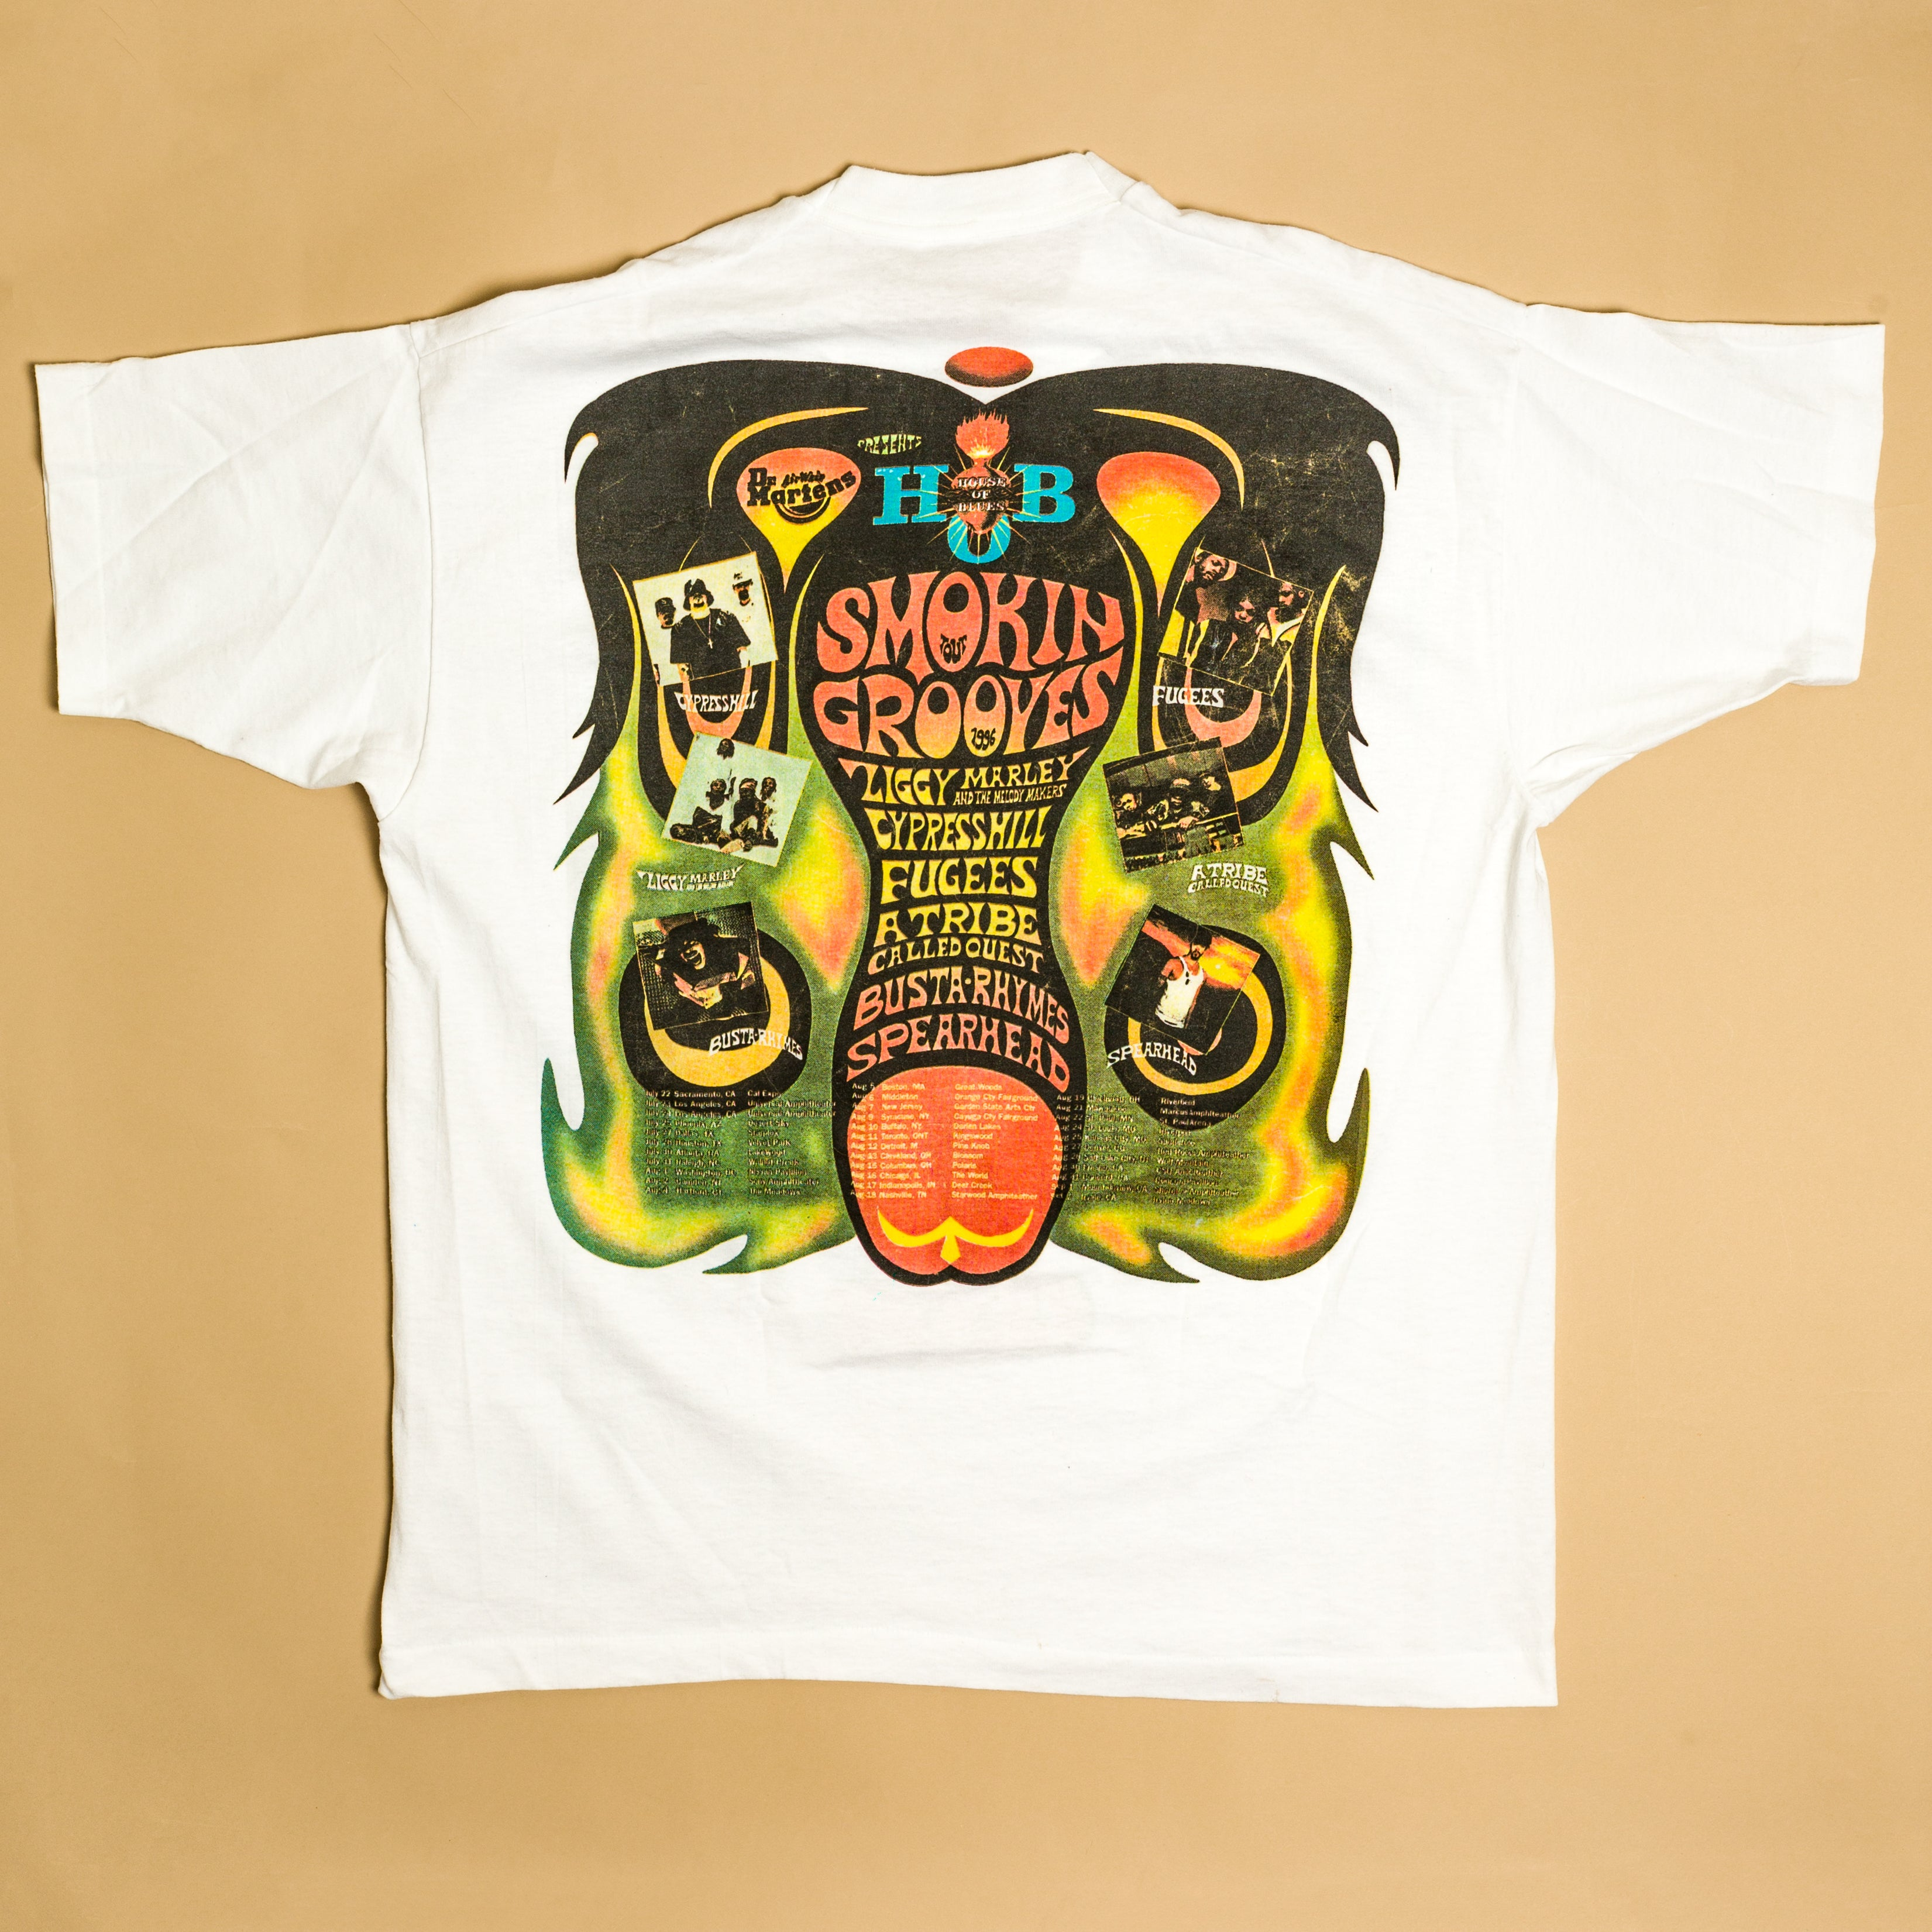 Vintage 1996 Smokin Grooves Tour T-Shirt